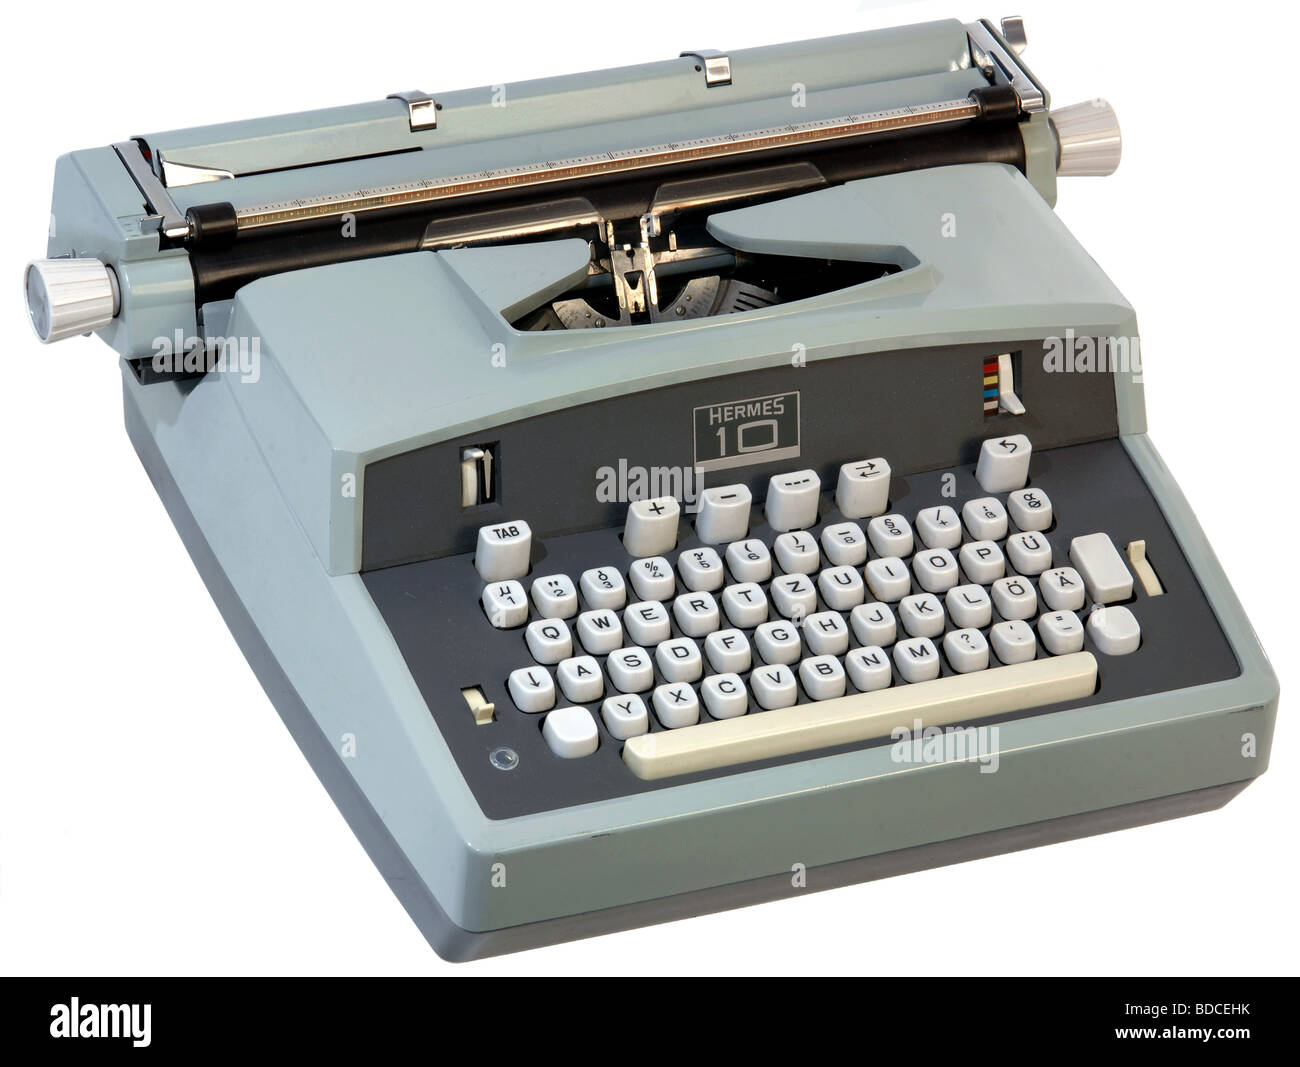 Electrical Office Equipment : Office equipment electric typewriter hermes